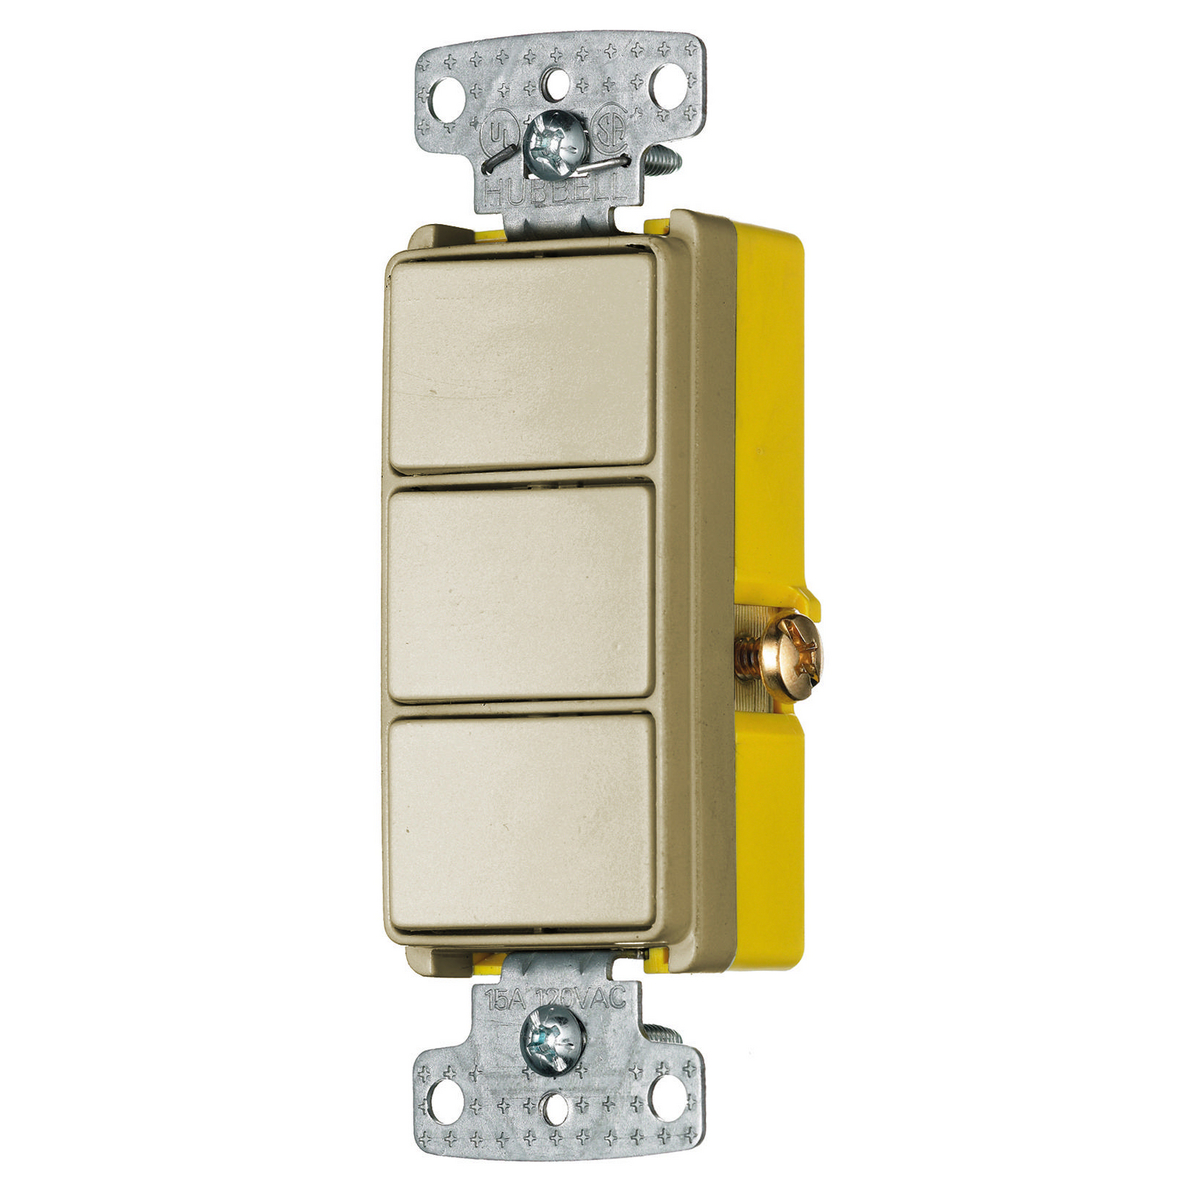 Hubbell RCD111I 15 Amp 120 to 277 VAC 1-Pole Ivory Quiet Rocker Switch